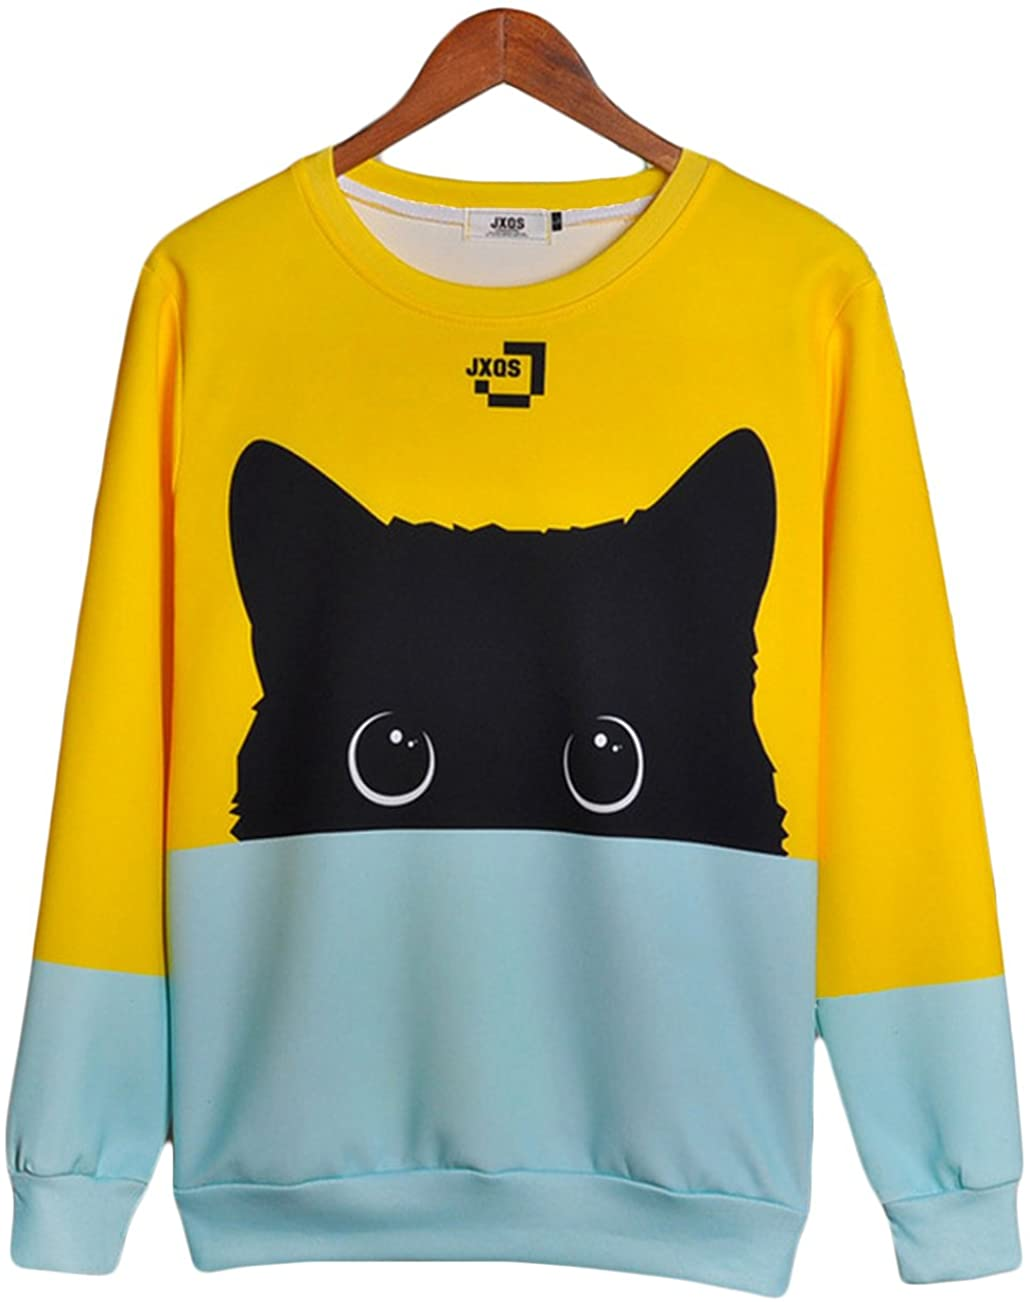 Corirshea-Colorblock-Cat-Unisex-Sweatshirt